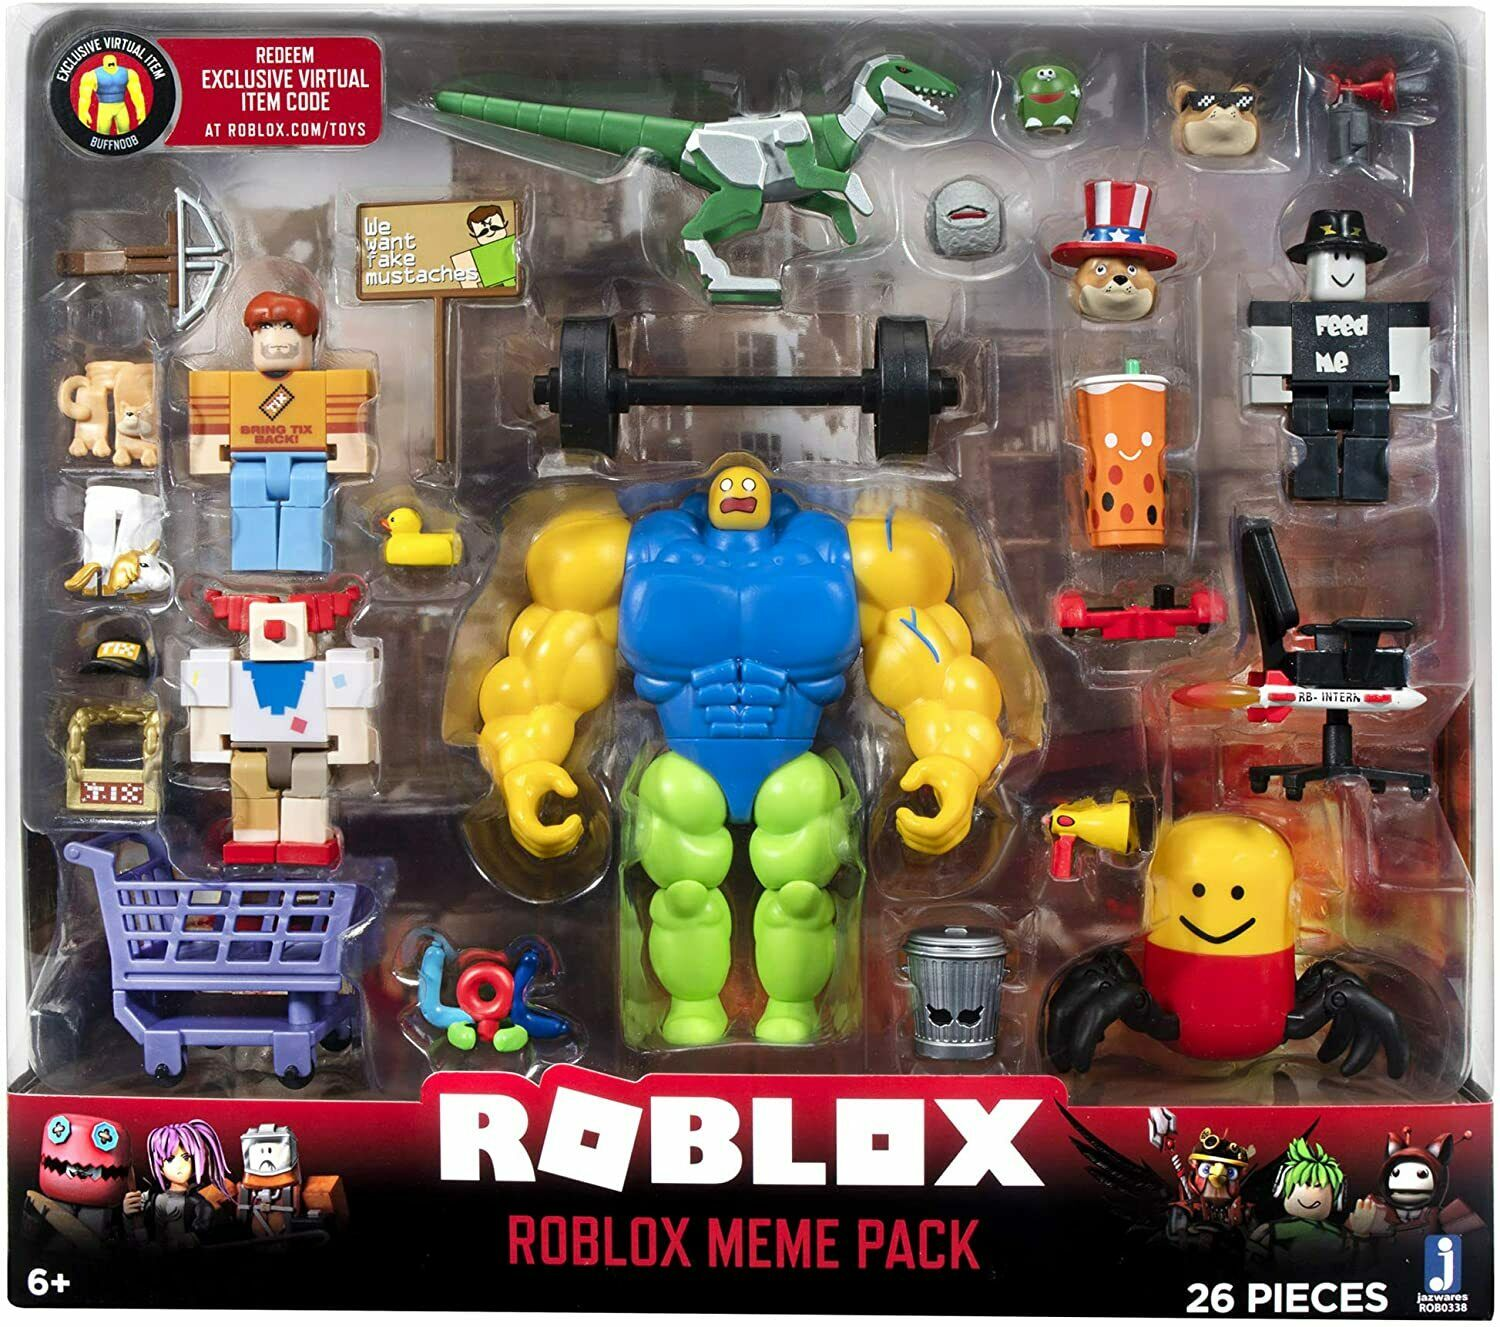 Roblox Action Collection - Meme Pack Playset Pack with Exclu